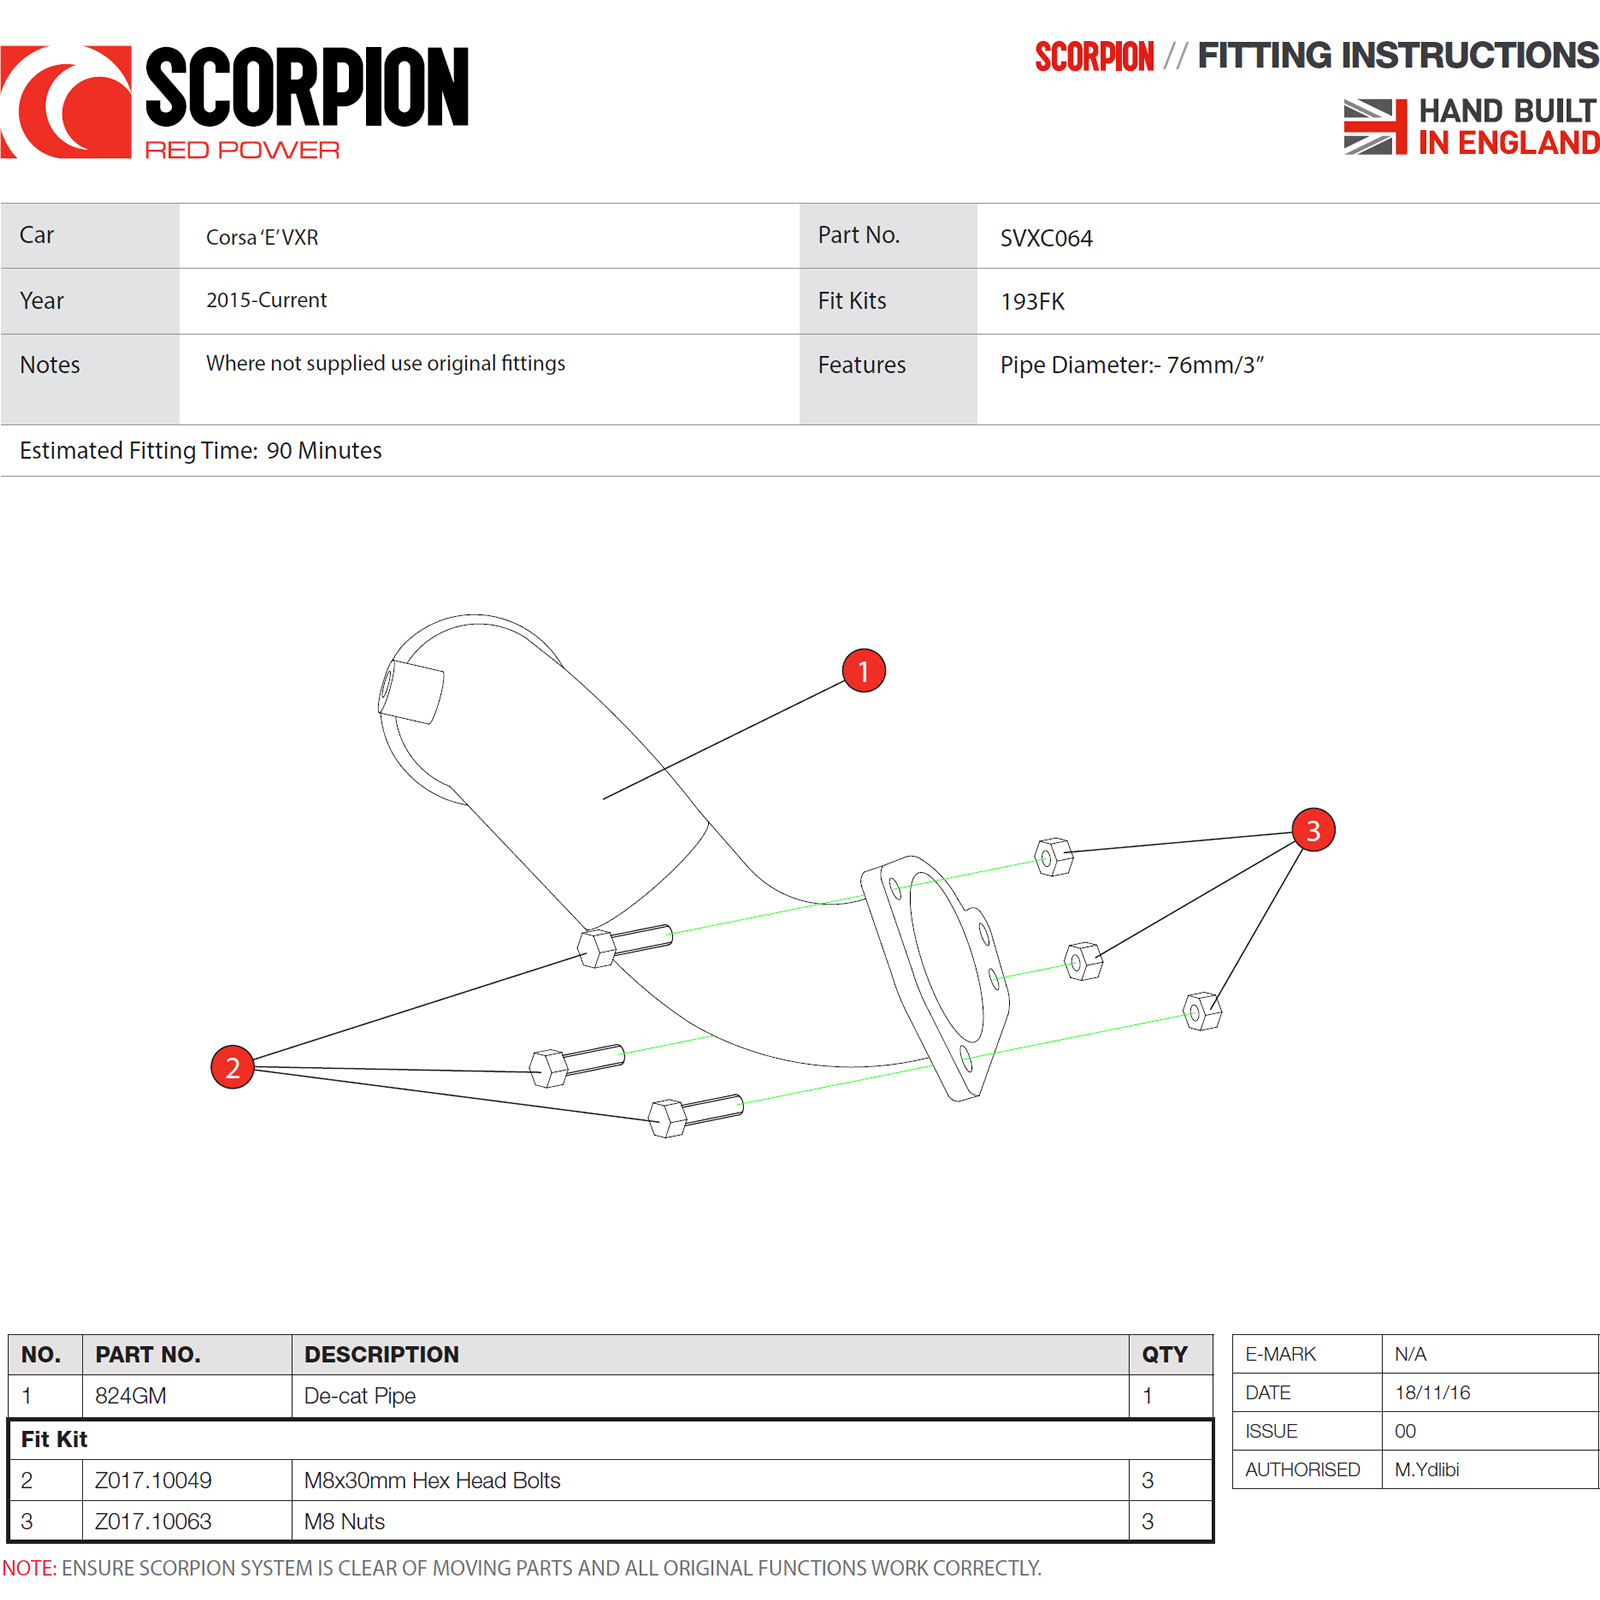 Scorpion Exhaust De Cat Turbo Downpipe Vauxhall Corsa E Vxr Sports Turbocharger Diagram Of Engine Sentinel Svxc064 Car With Catalyst Replacement